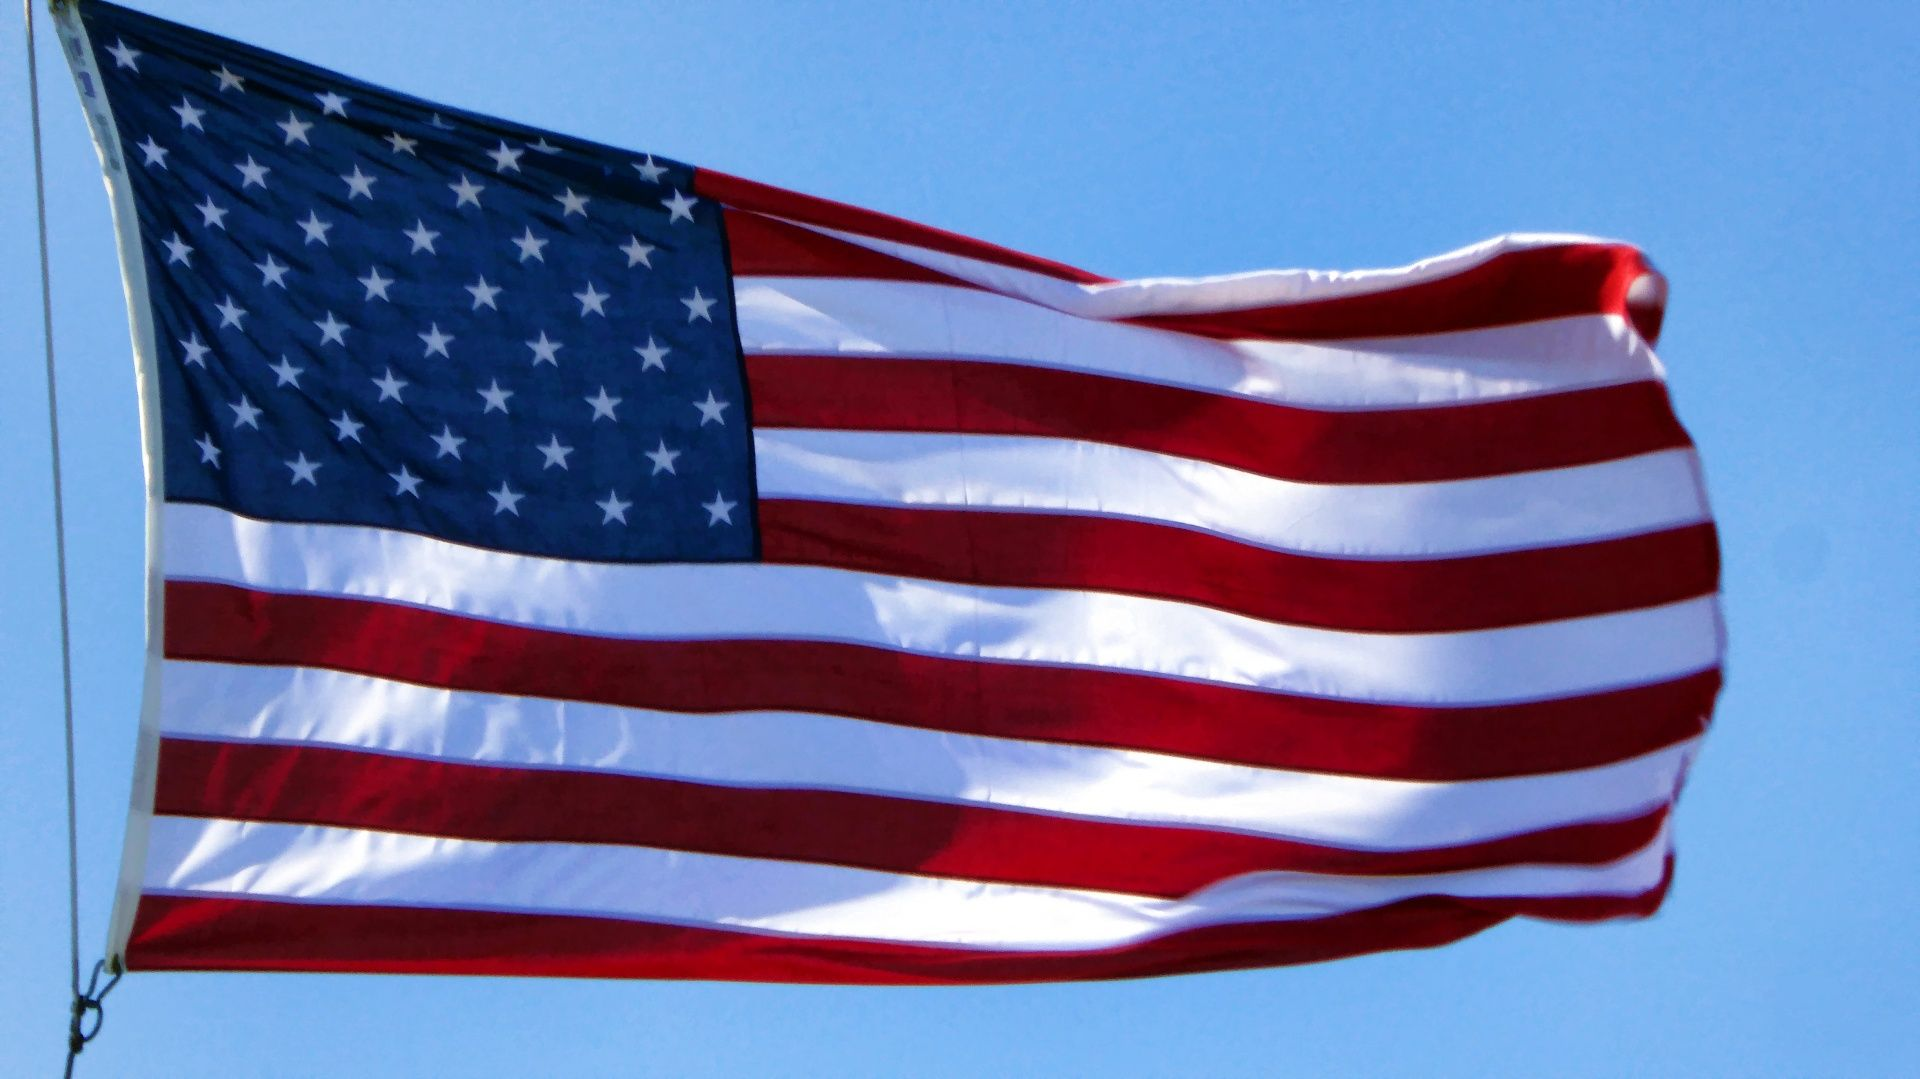 American Flag American Flag Stock Photos Free Stock Photos